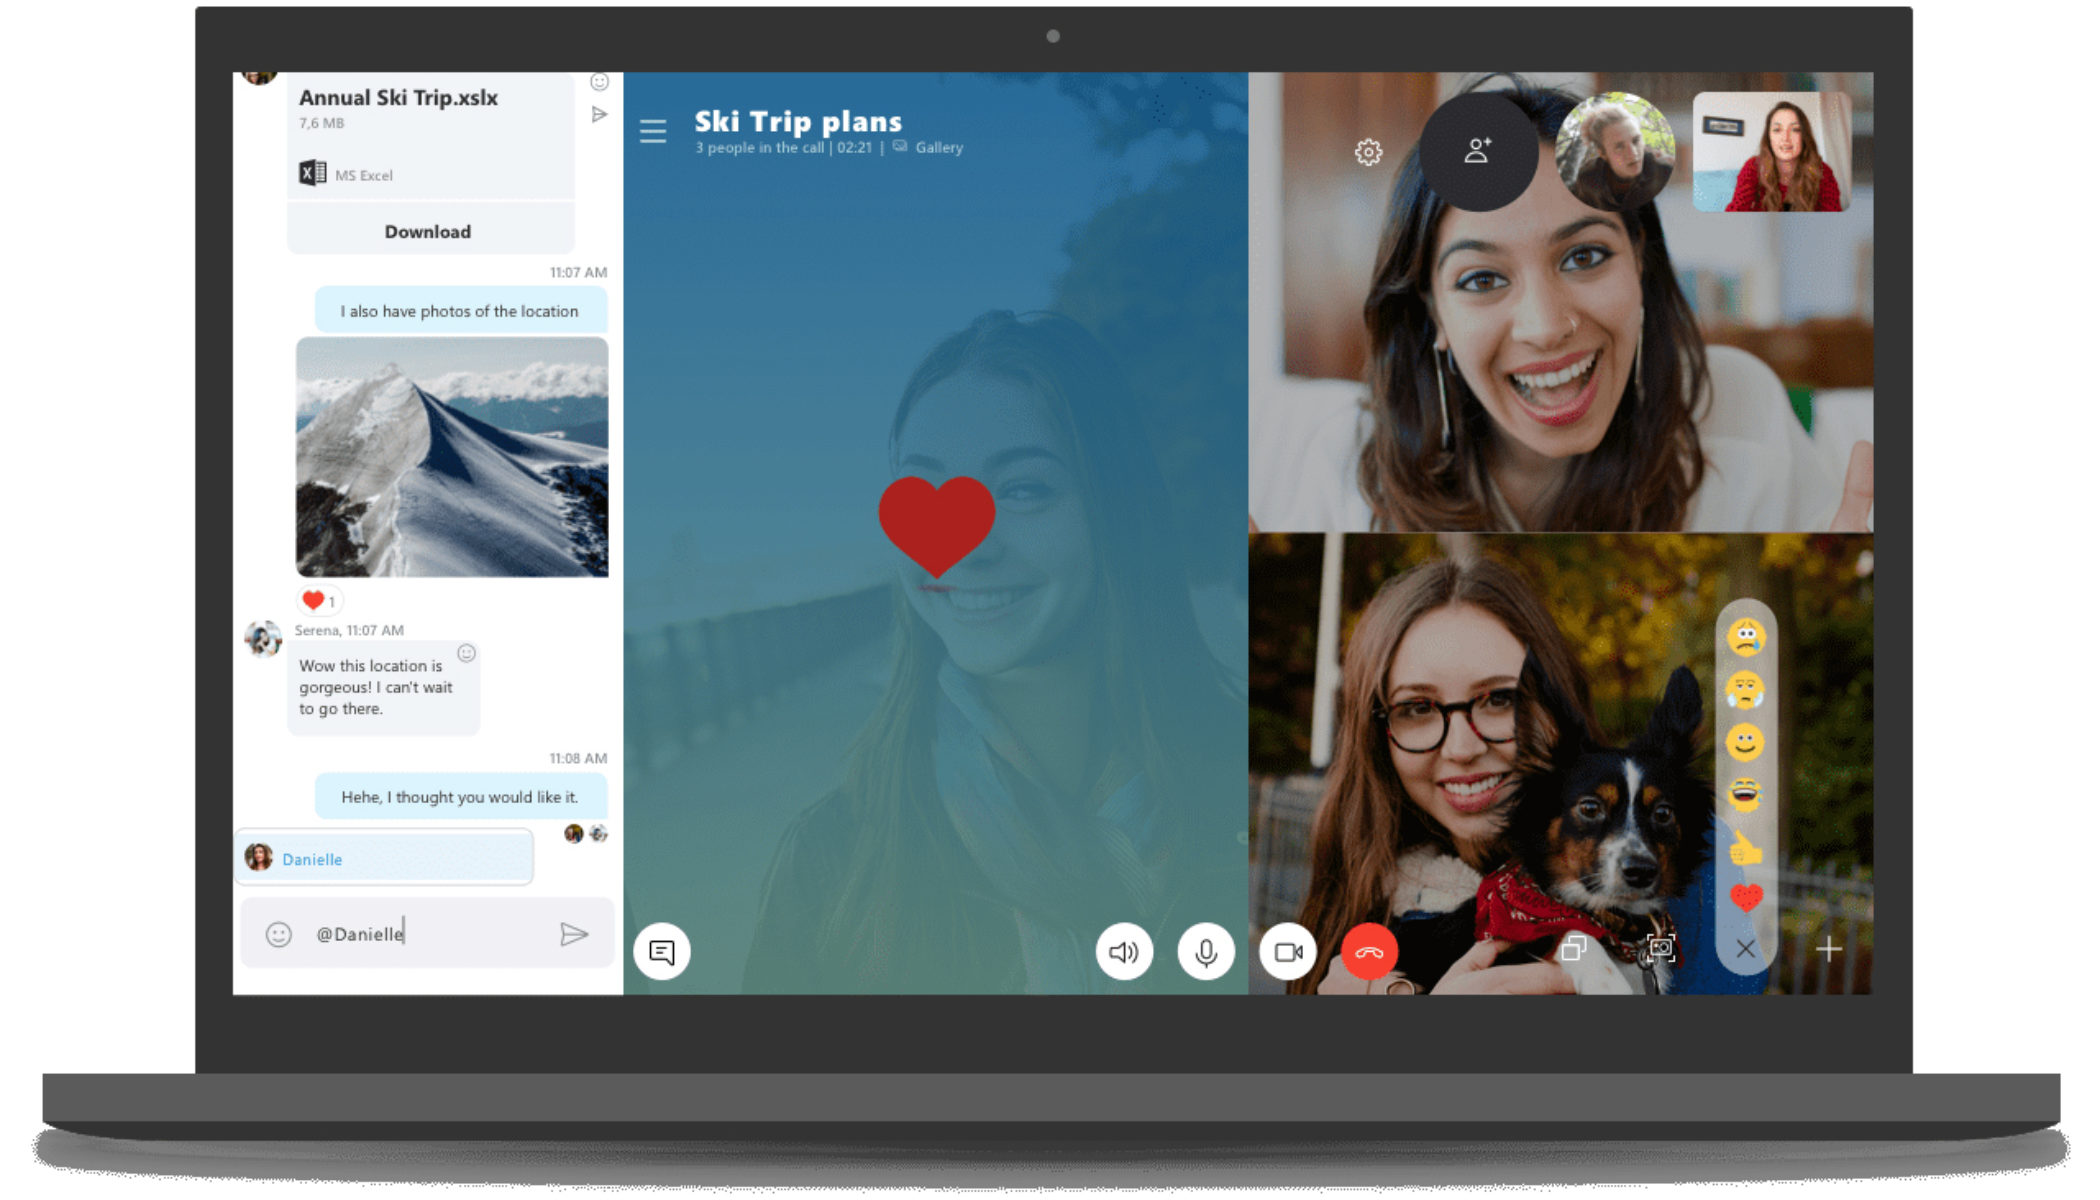 Skype to bring back split view for chat screens in latest version